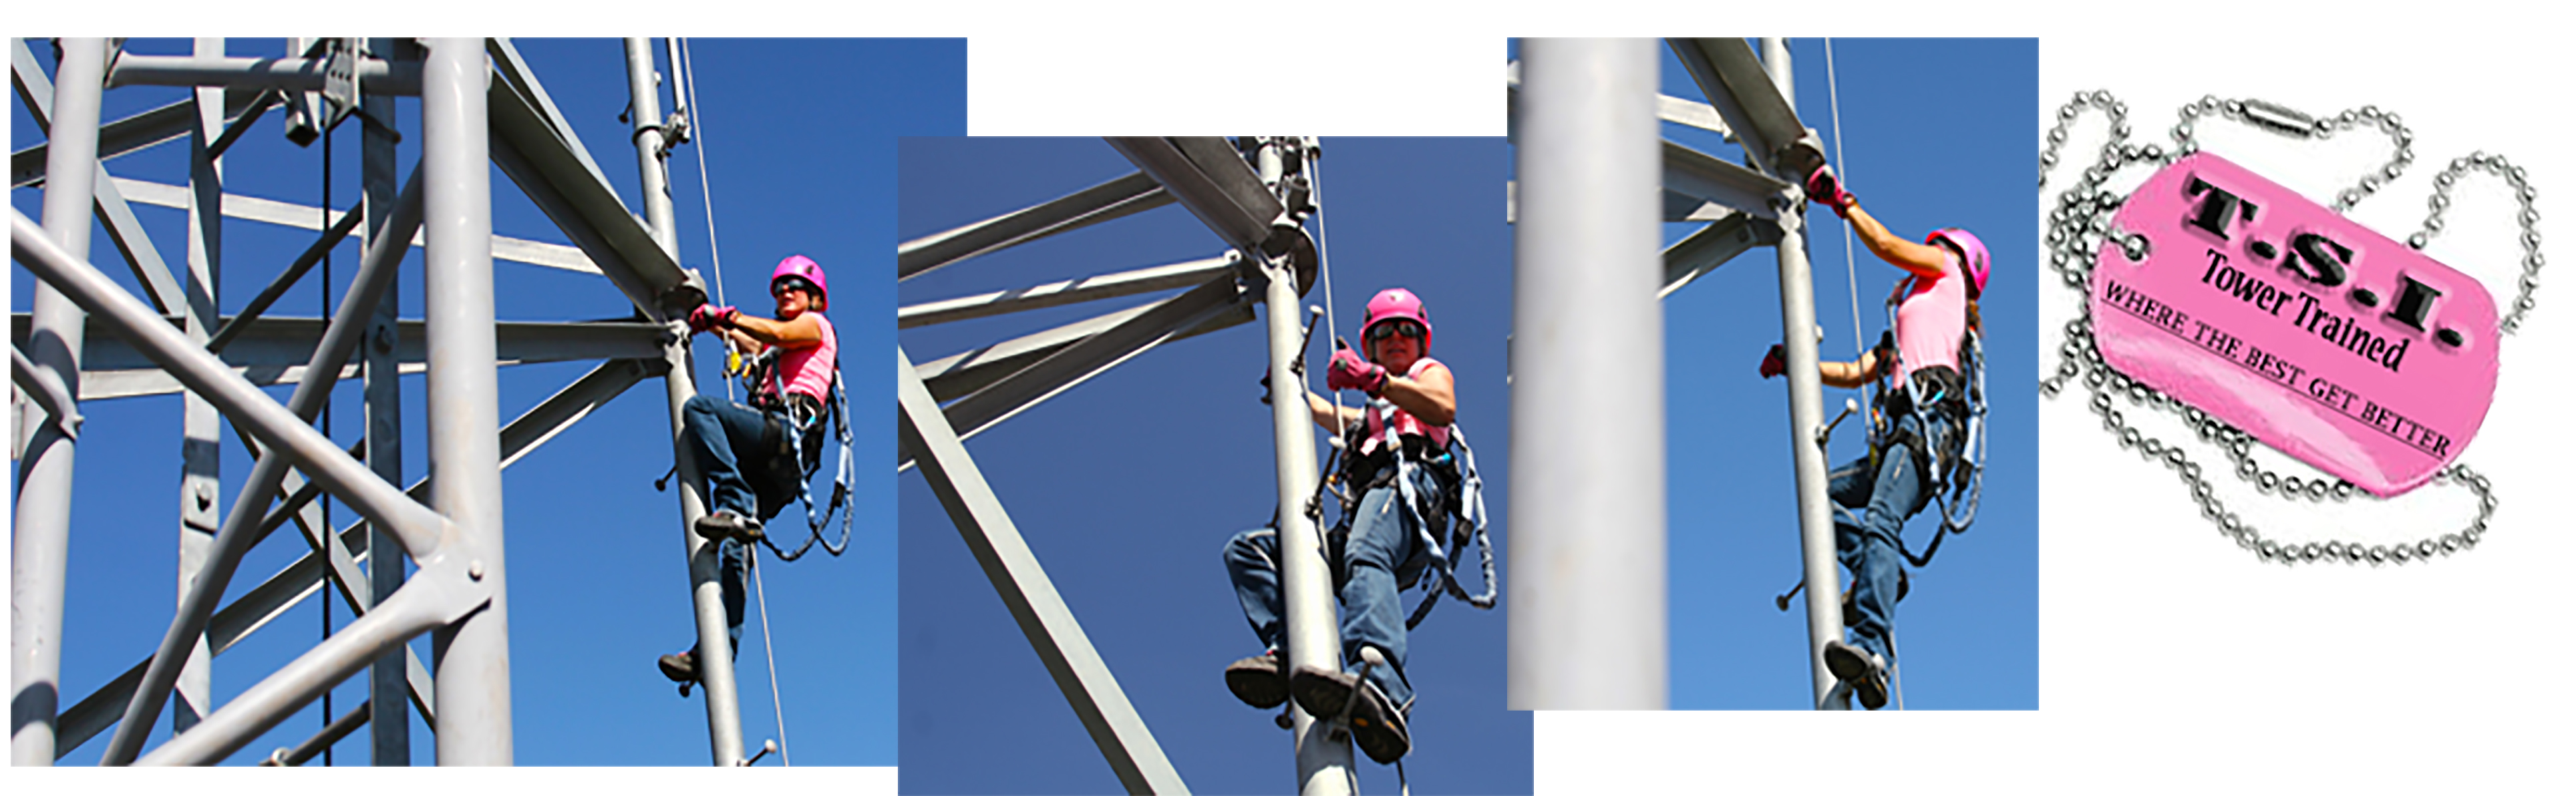 Kathy Brand_tower safety and rescue climber